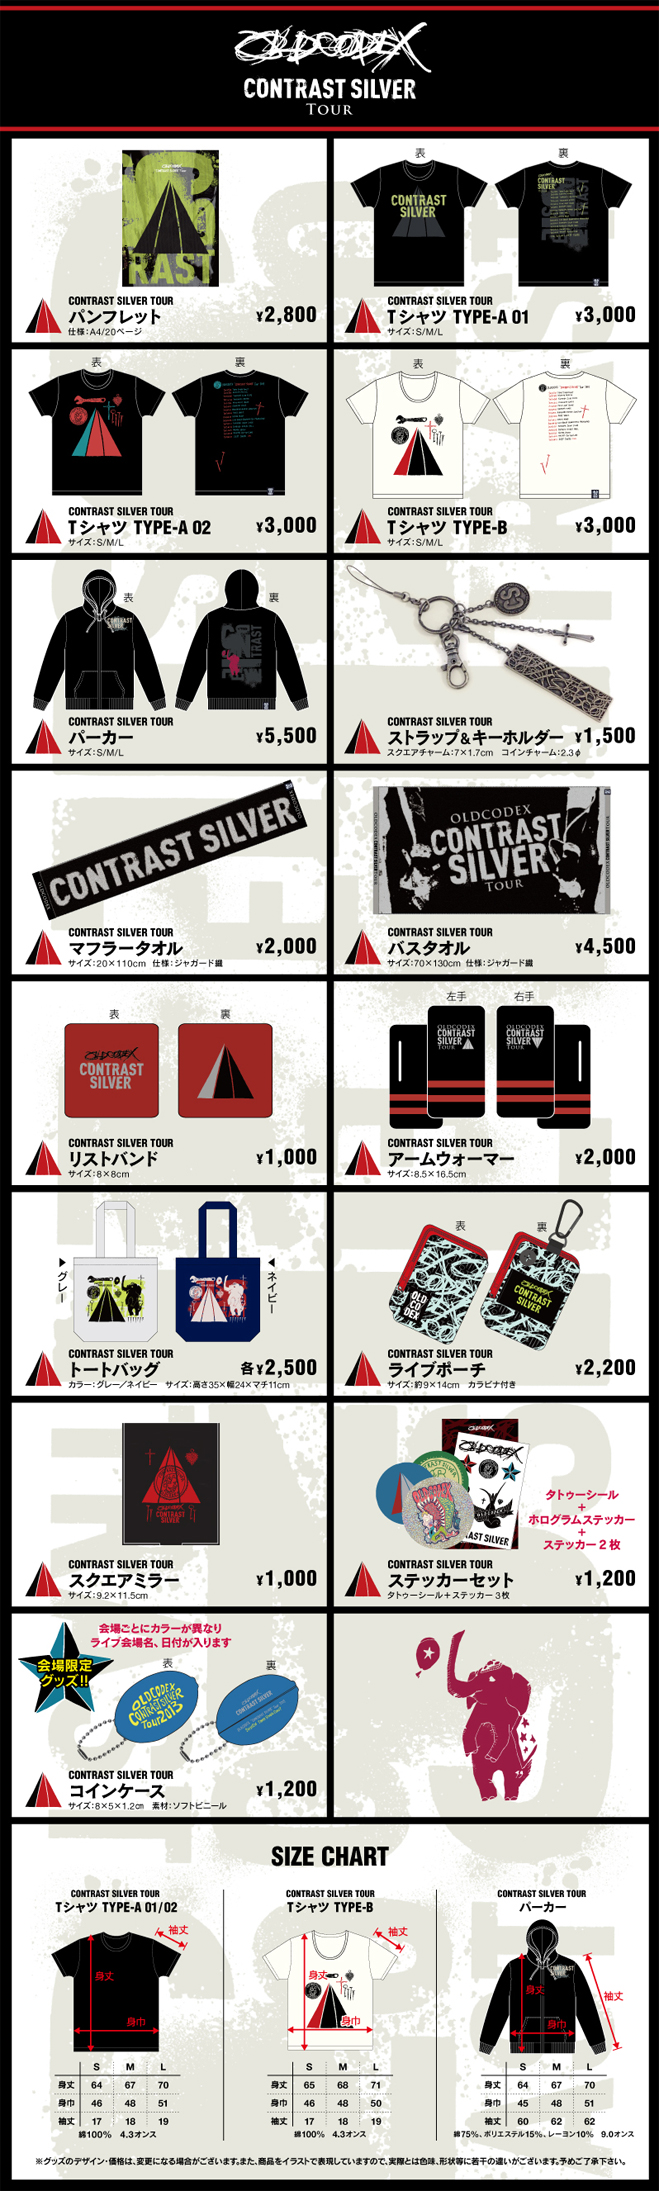 "OLDCODEX ""CONTRAST SILVER"" Tour OFFICIAL GOODS Line up"